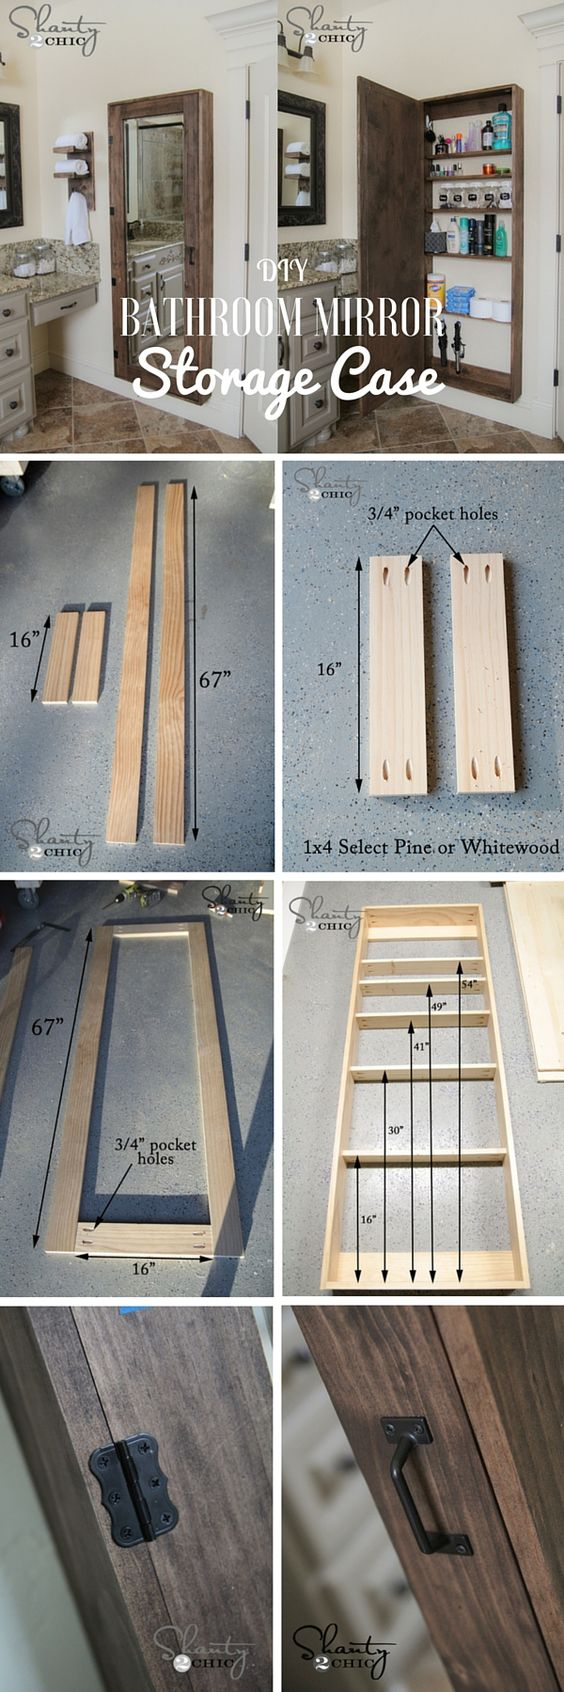 Check out the tutorial: DIY Bathroom Mirror Storage Case #ISDDIY #ISDDecor @istandarddesign: